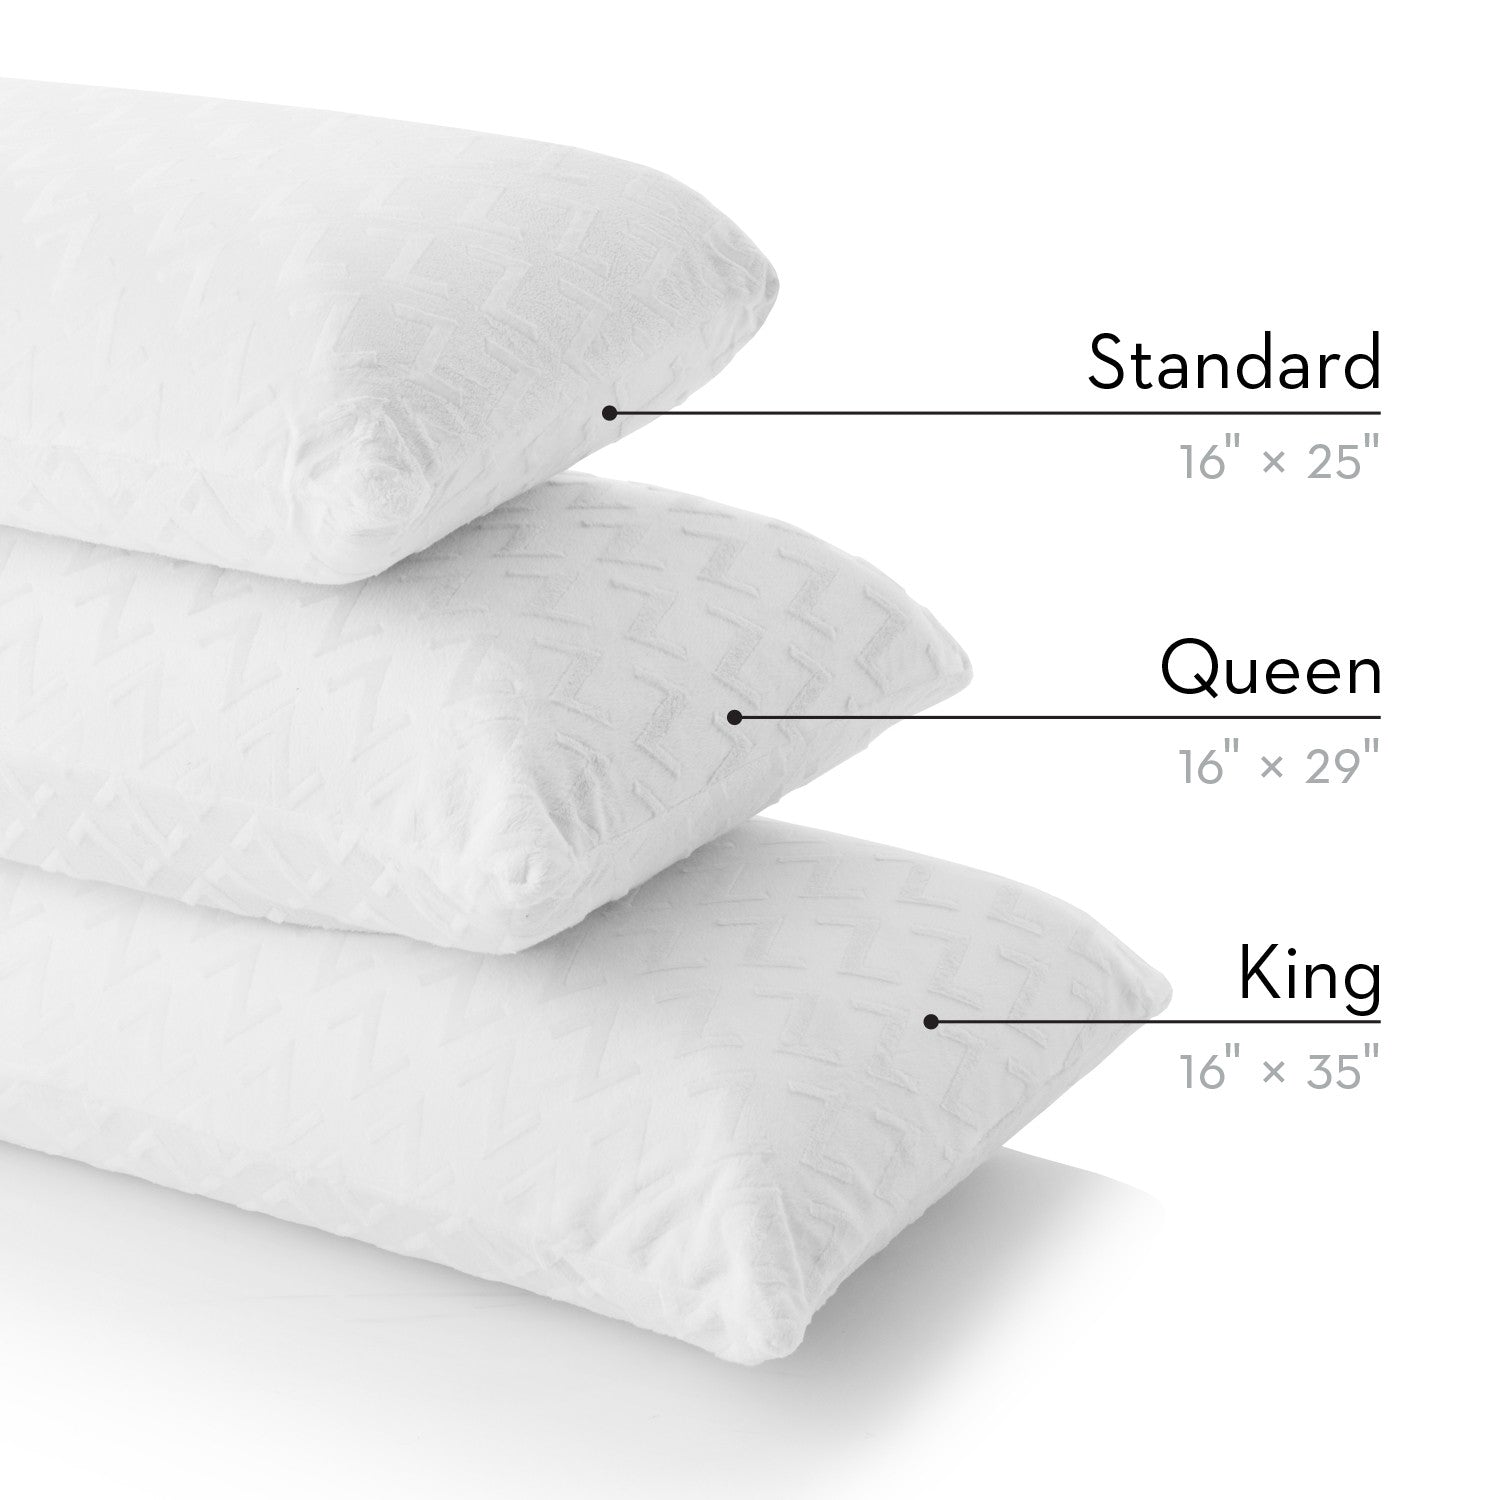 Z Latex Pillow High Loft Firm Essential Sleep